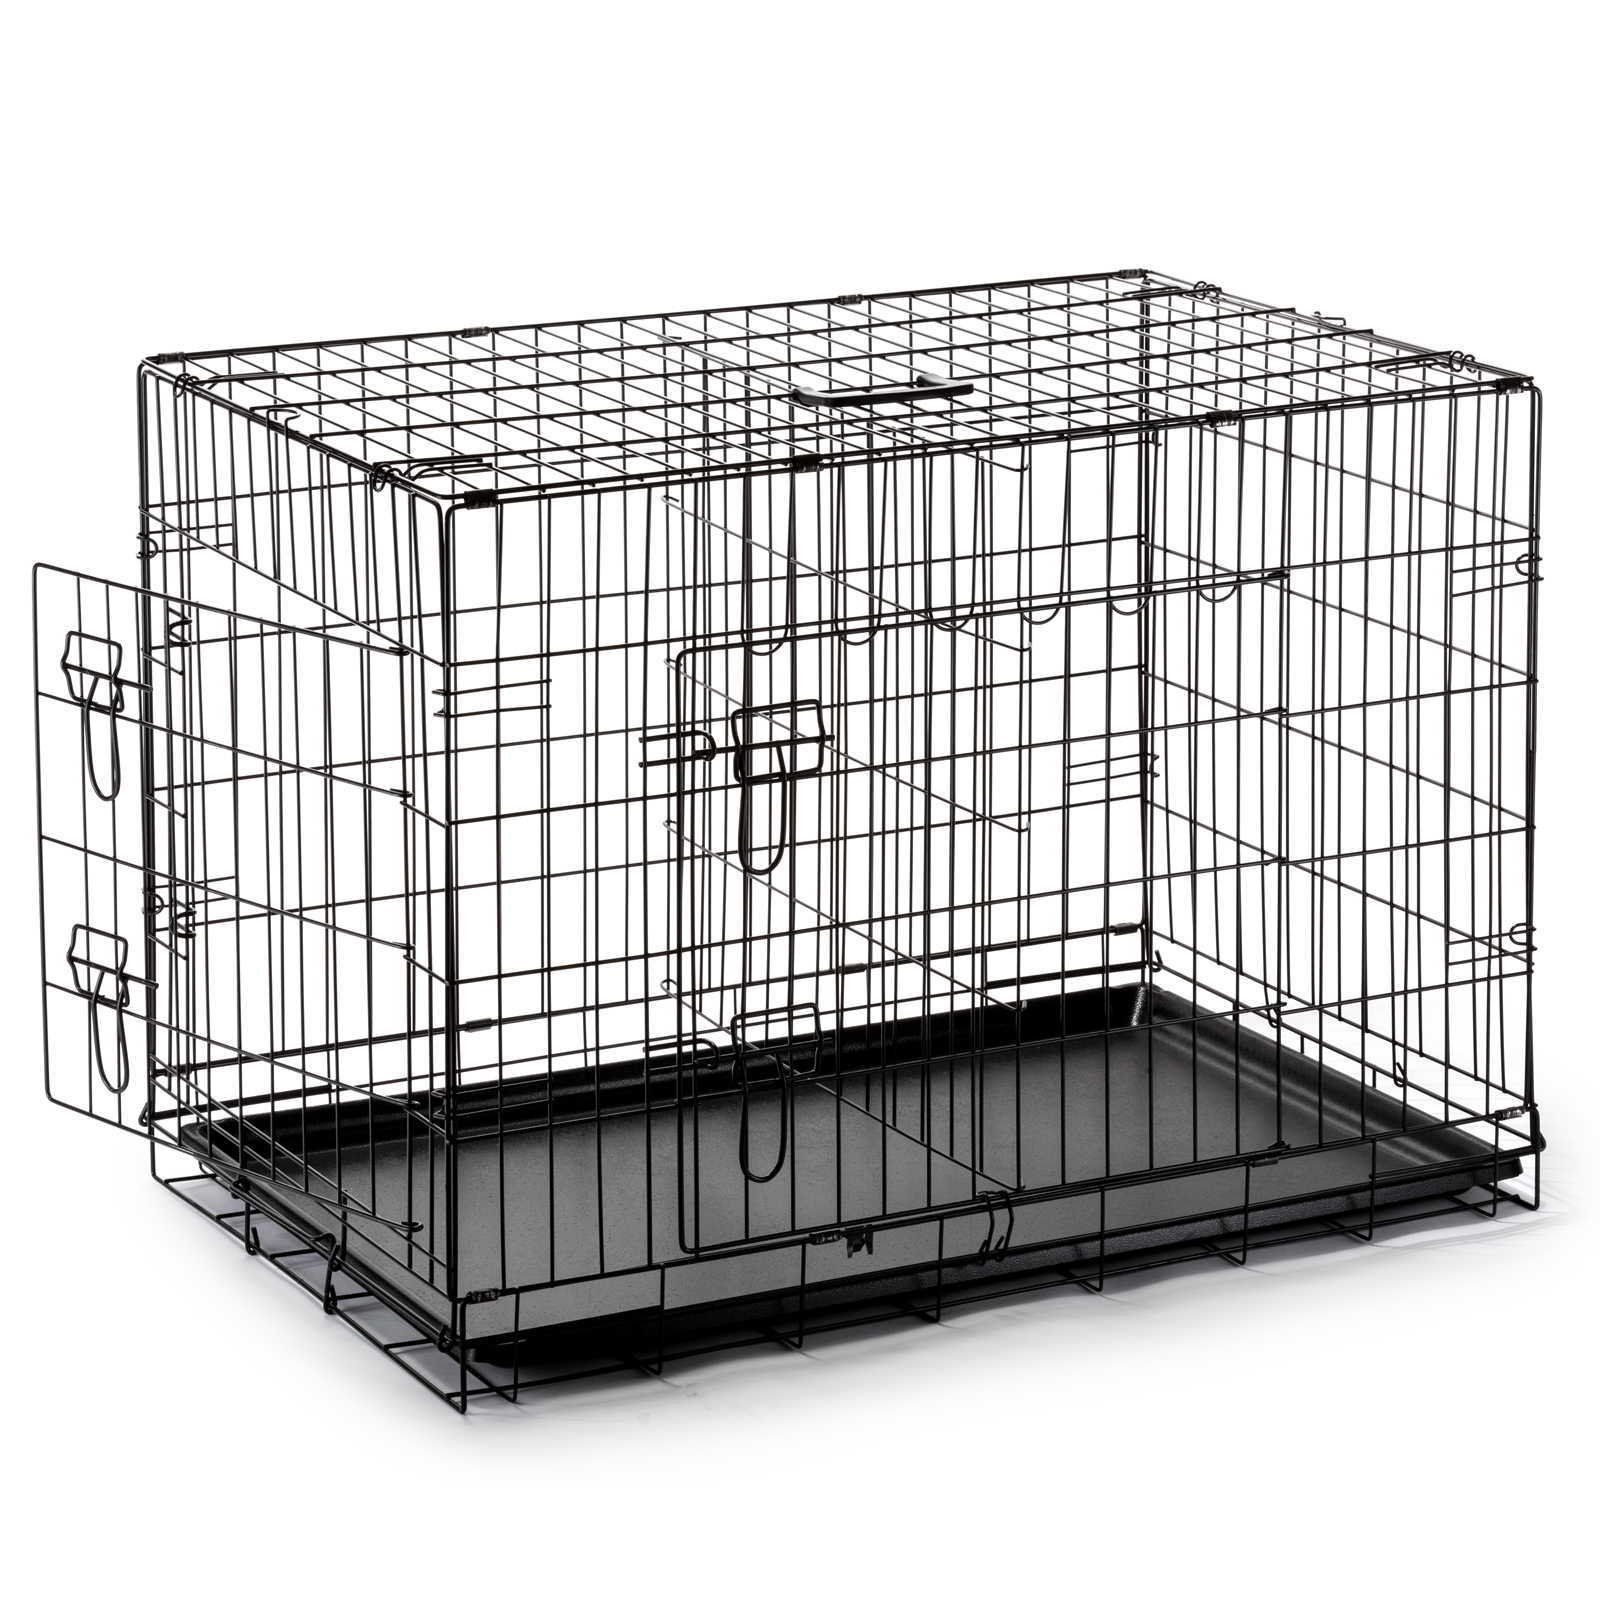 Smithbuilt 42 Extra Large Portable Dog Crate Cage With Divider Xl Folding Twodoor Metal Wire Pet And Animal Kennel Portable Dog Crate Large Dog Cage Dog Crate